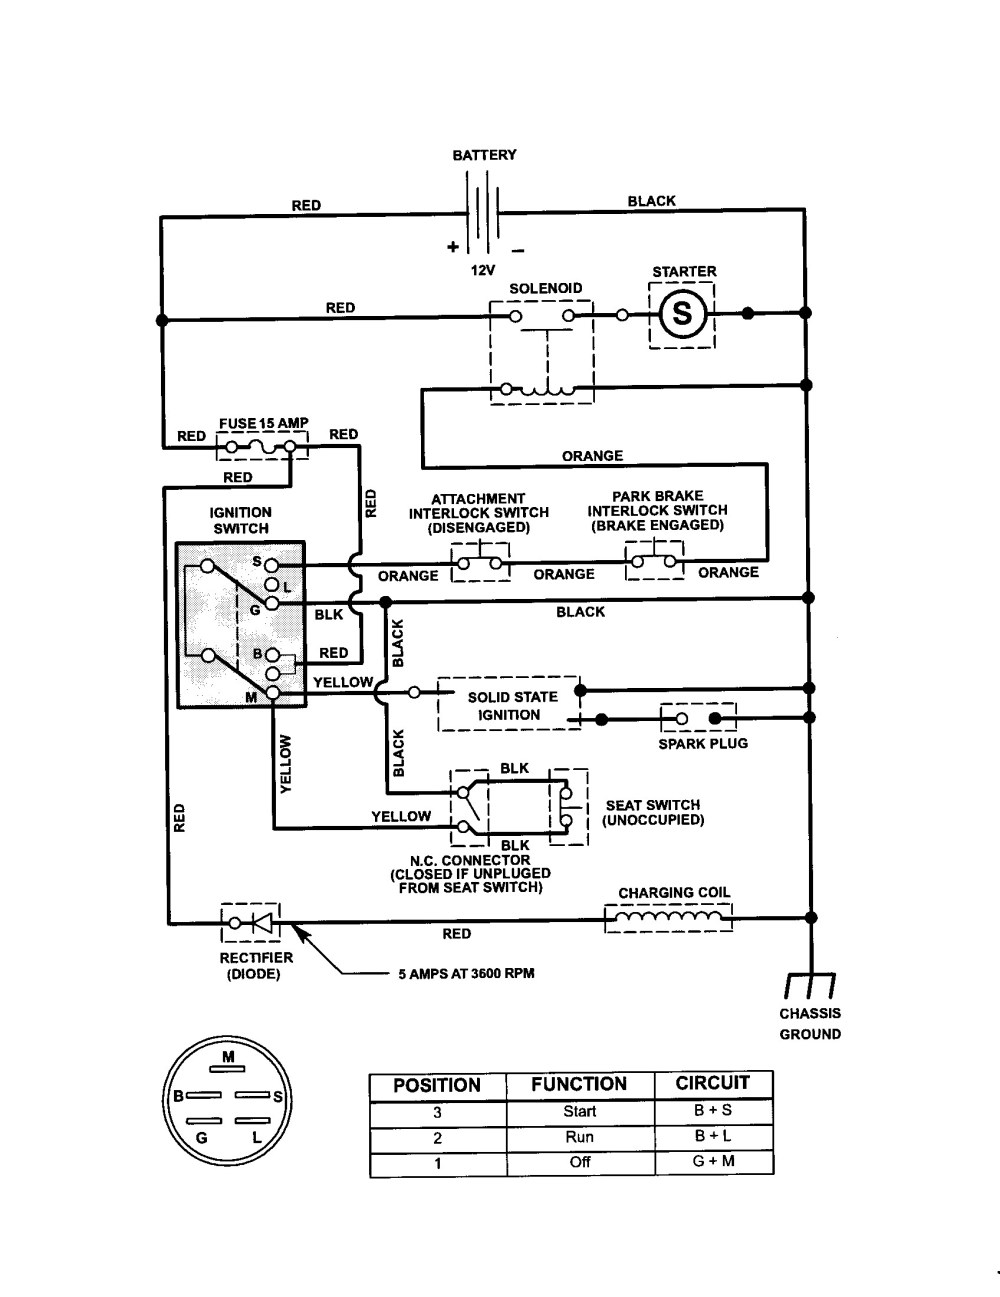 medium resolution of craftsman wiring schematic wiring diagram sample craftsman wiring diagram riding lawn mower craftsman wiring diagram